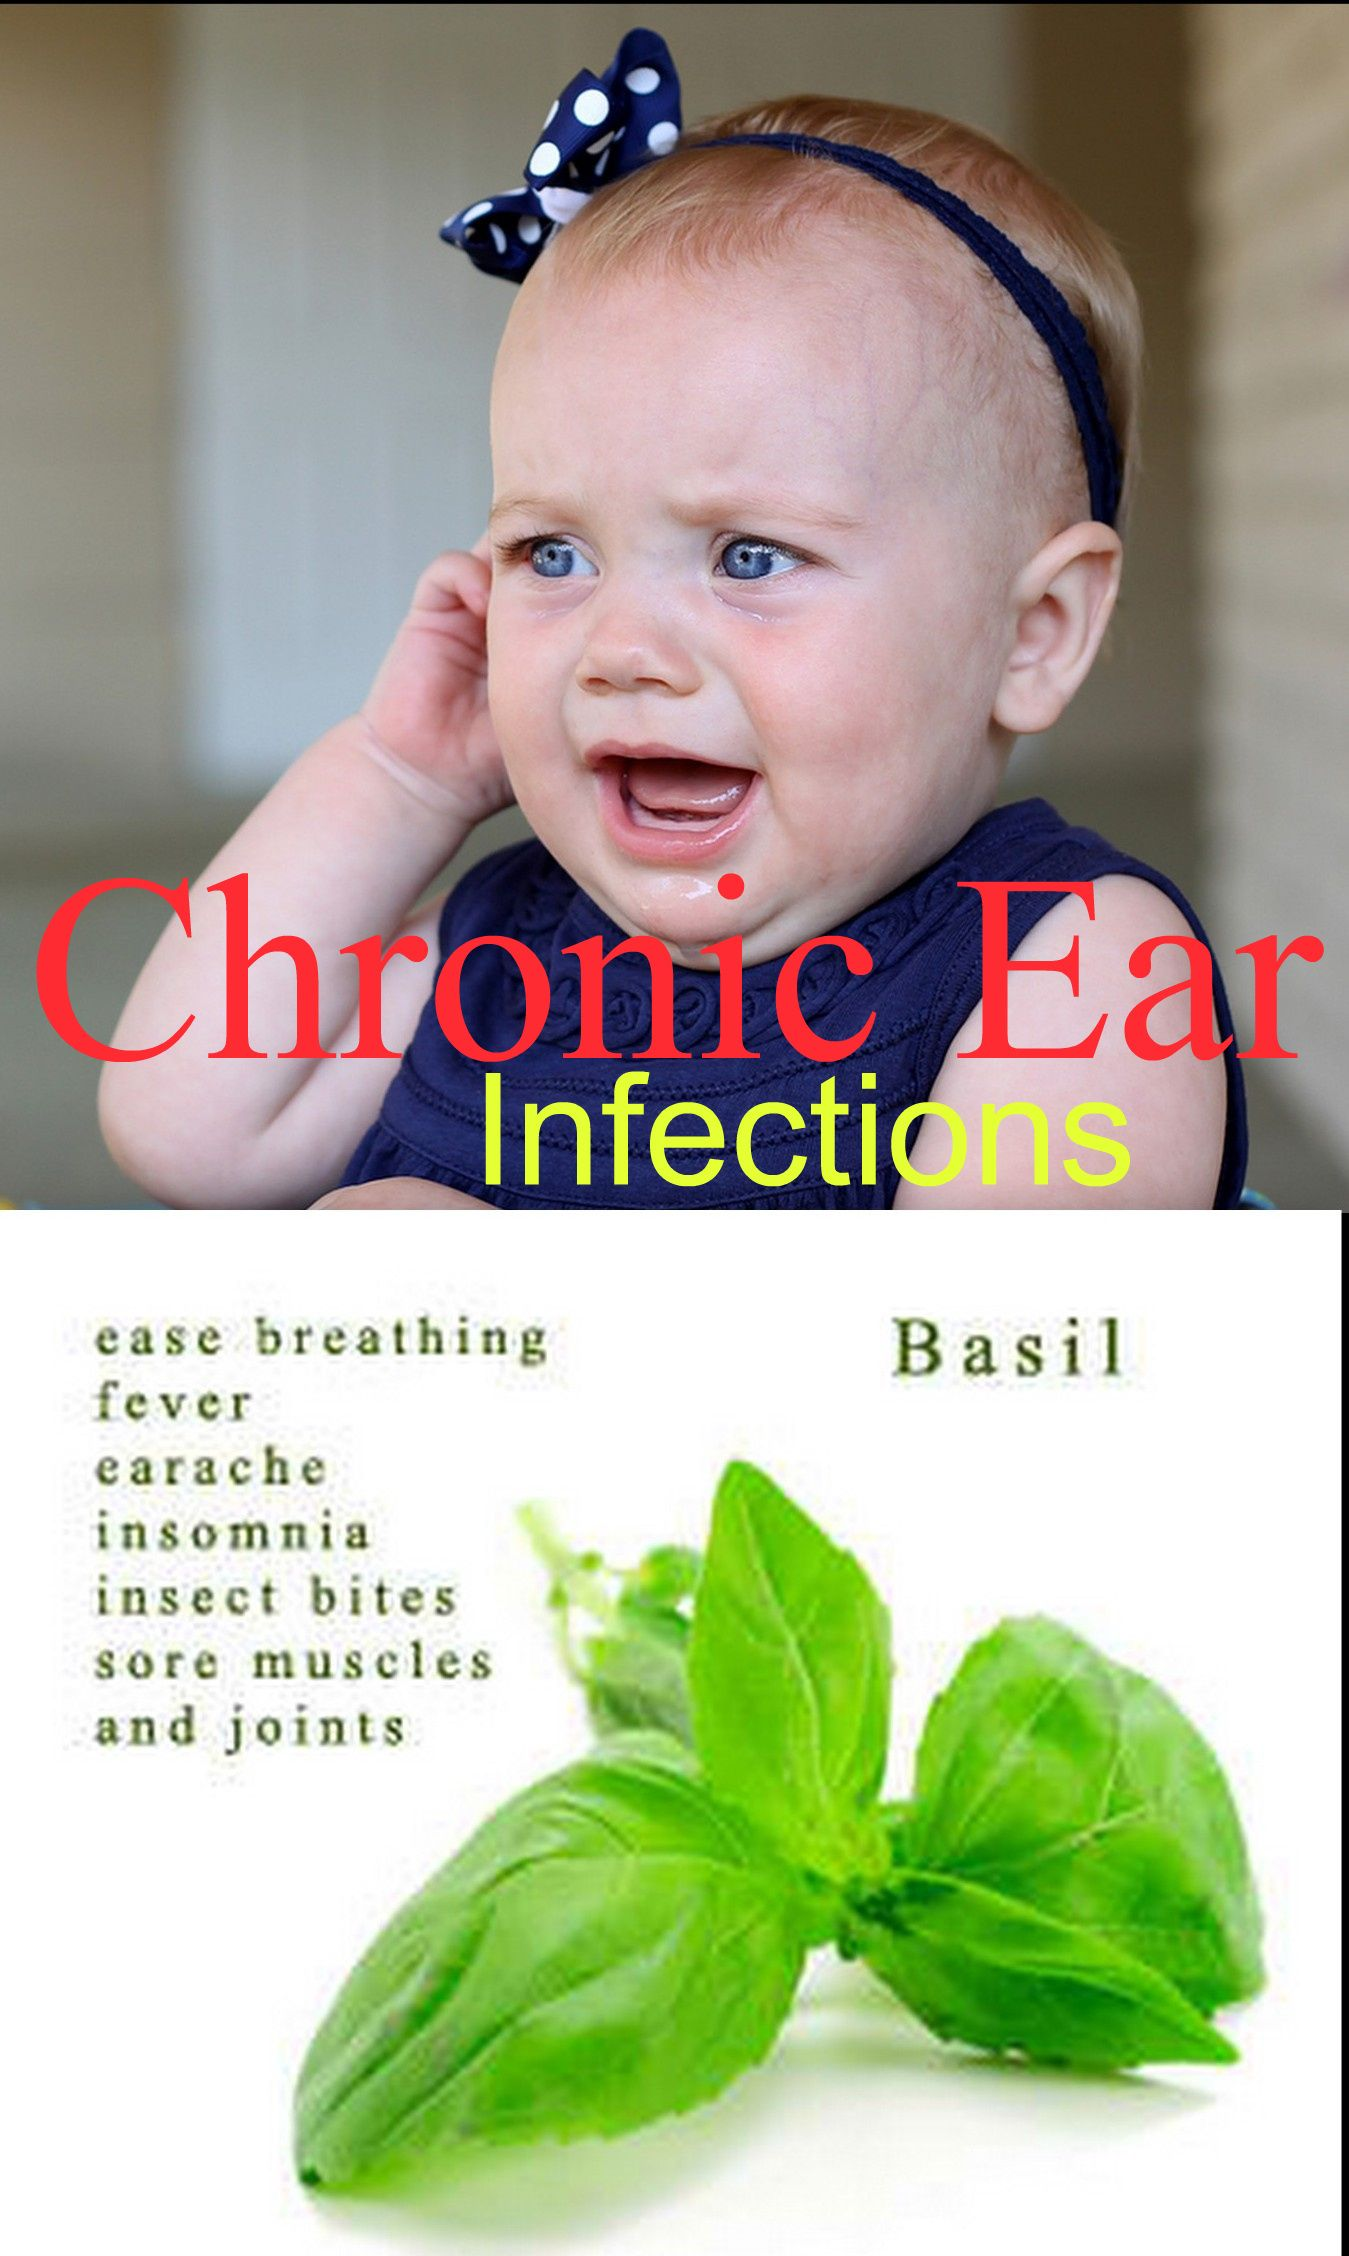 How to Beat Chronic Ear Infections with Basil! #kids #goodtoknow @Maria Pfuehler